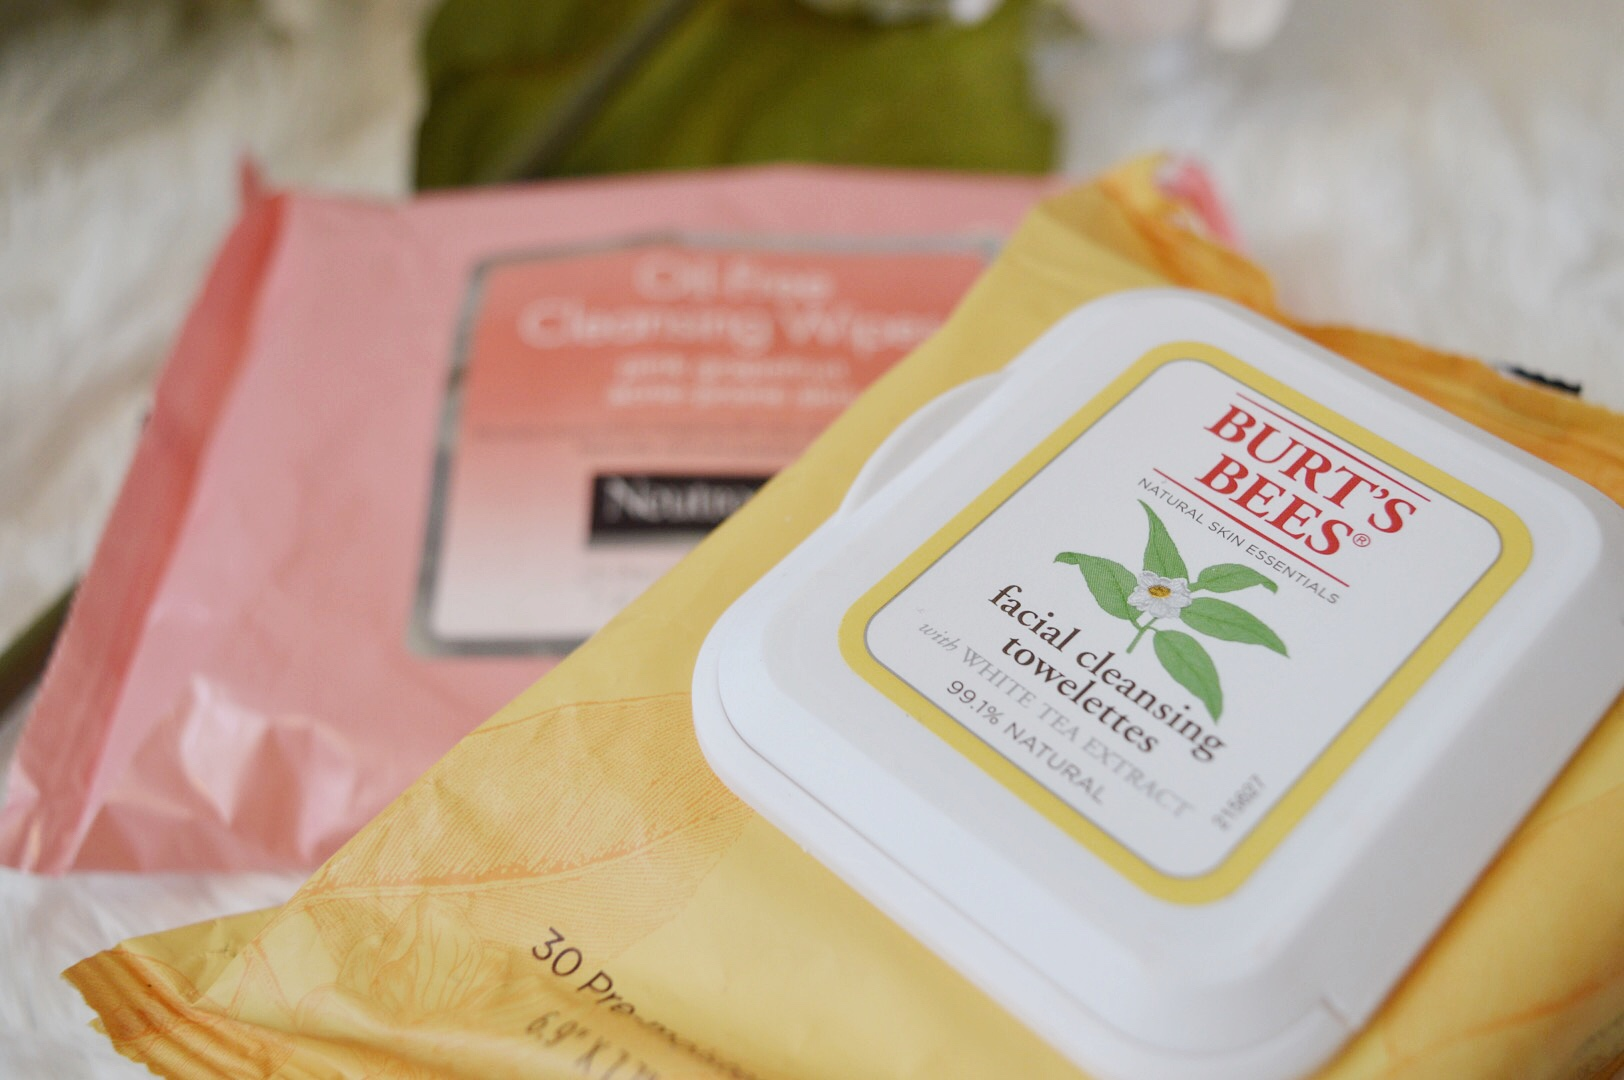 Skin Care Makeup Wipes